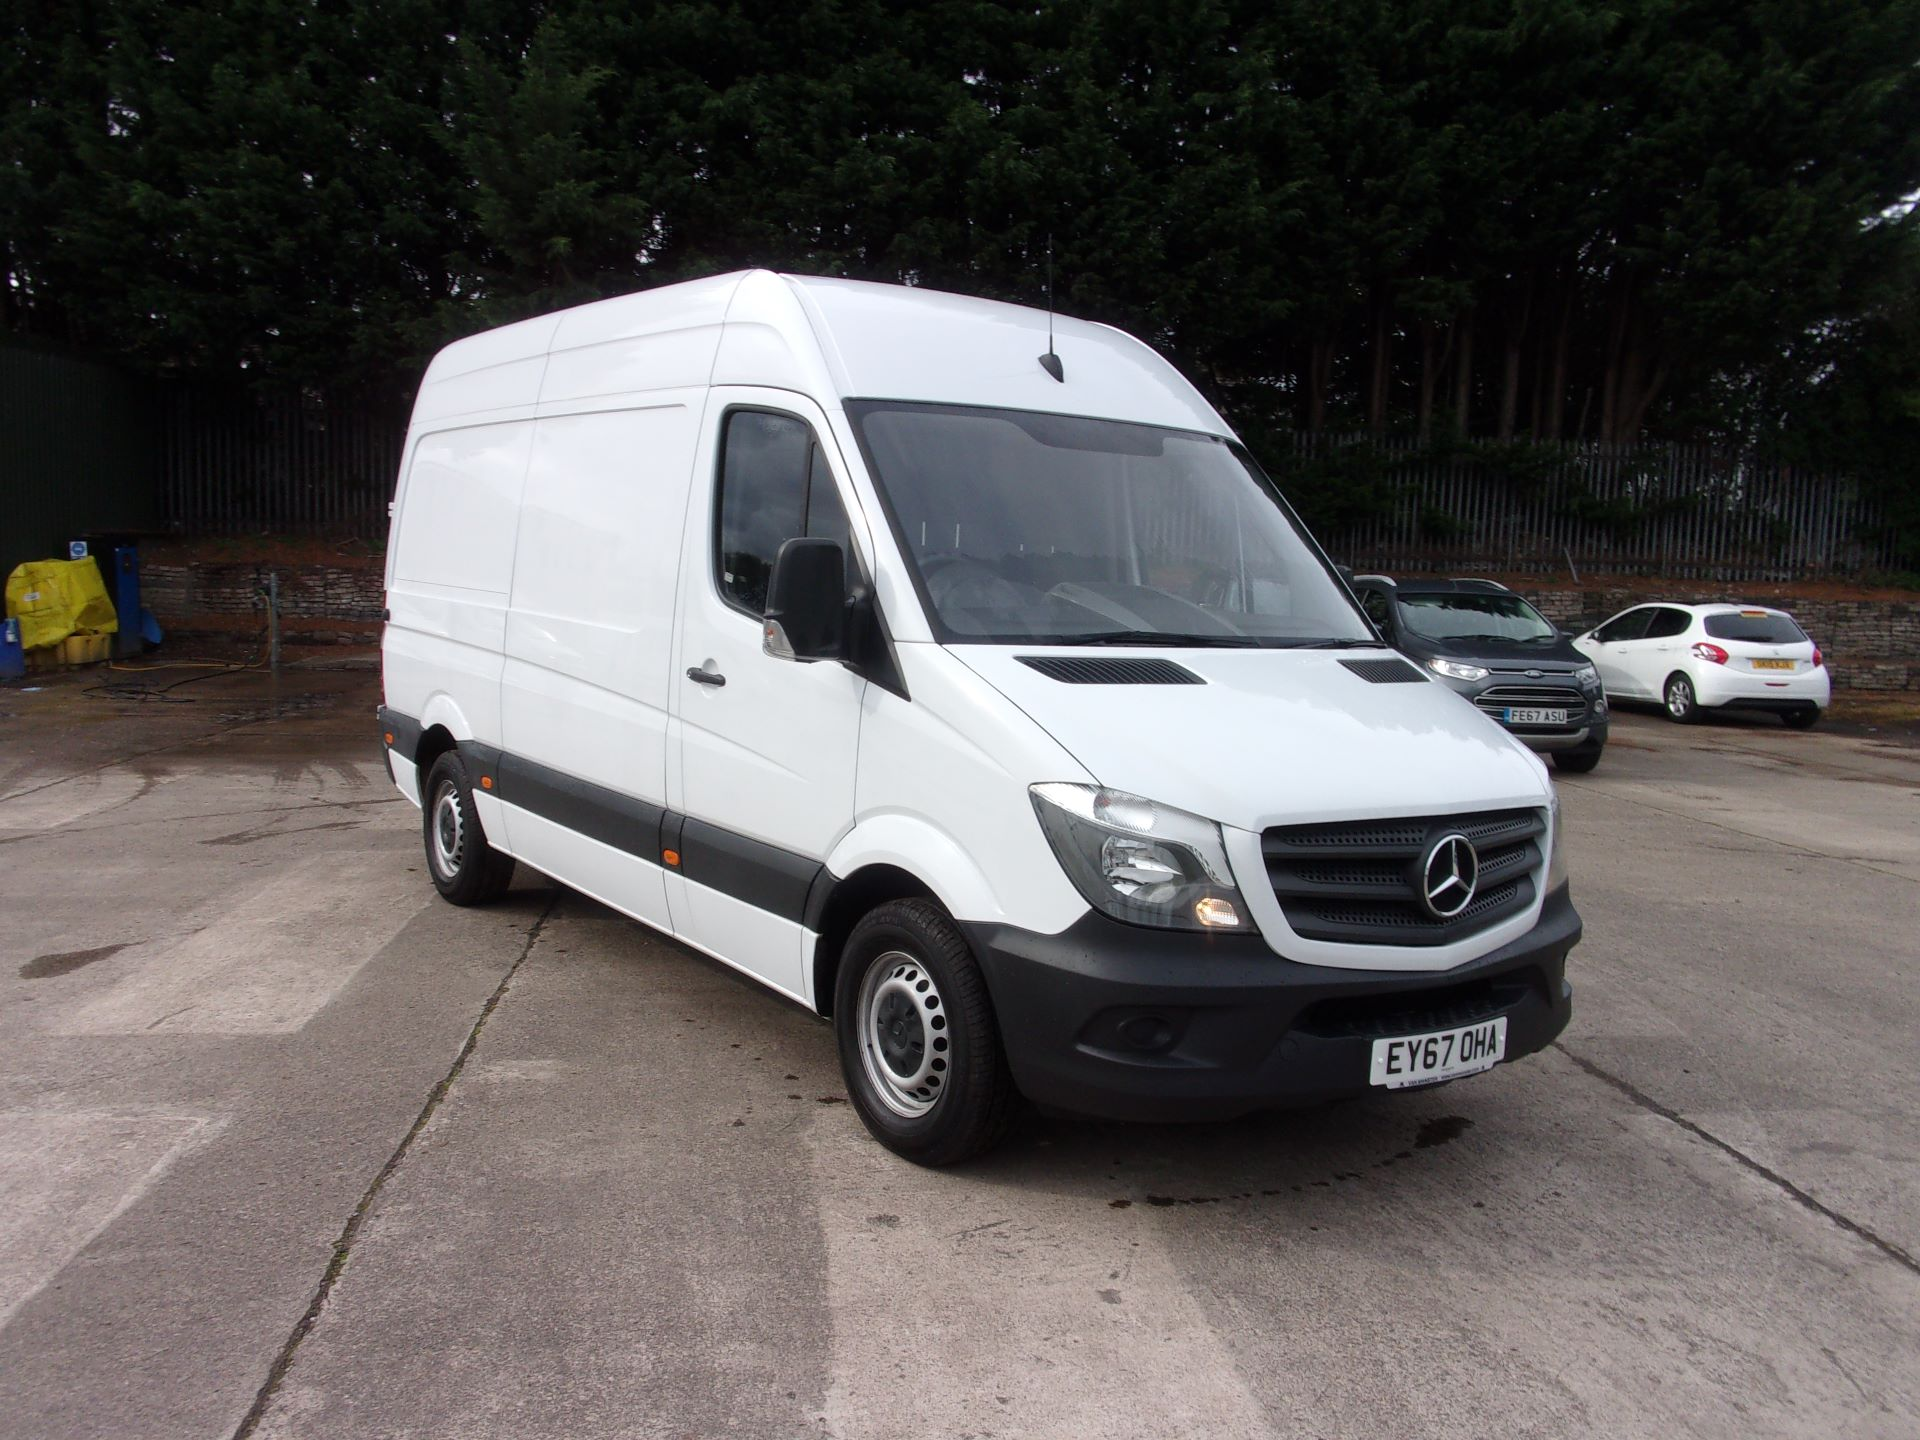 2017 Mercedes-Benz Sprinter 314 CDI MWB HIGH ROOF VAN EURO 6 (EY67OHA)